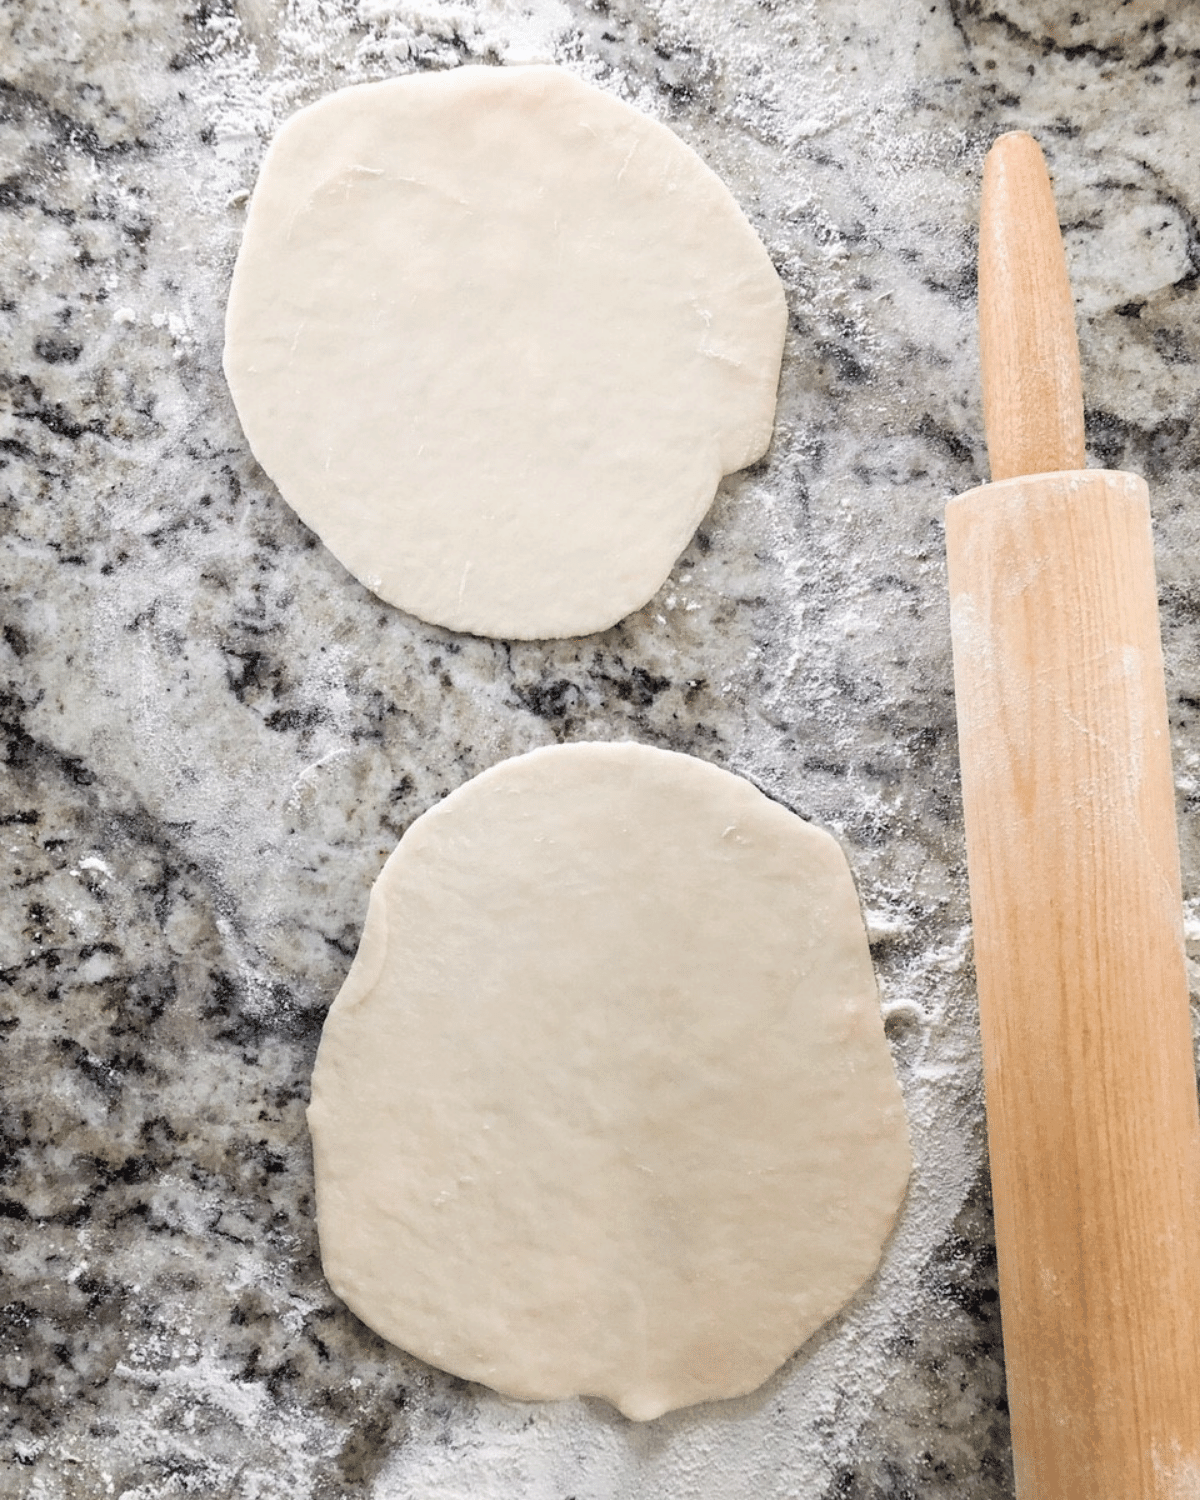 Roll out flatbread dough with rolling pin until desired size